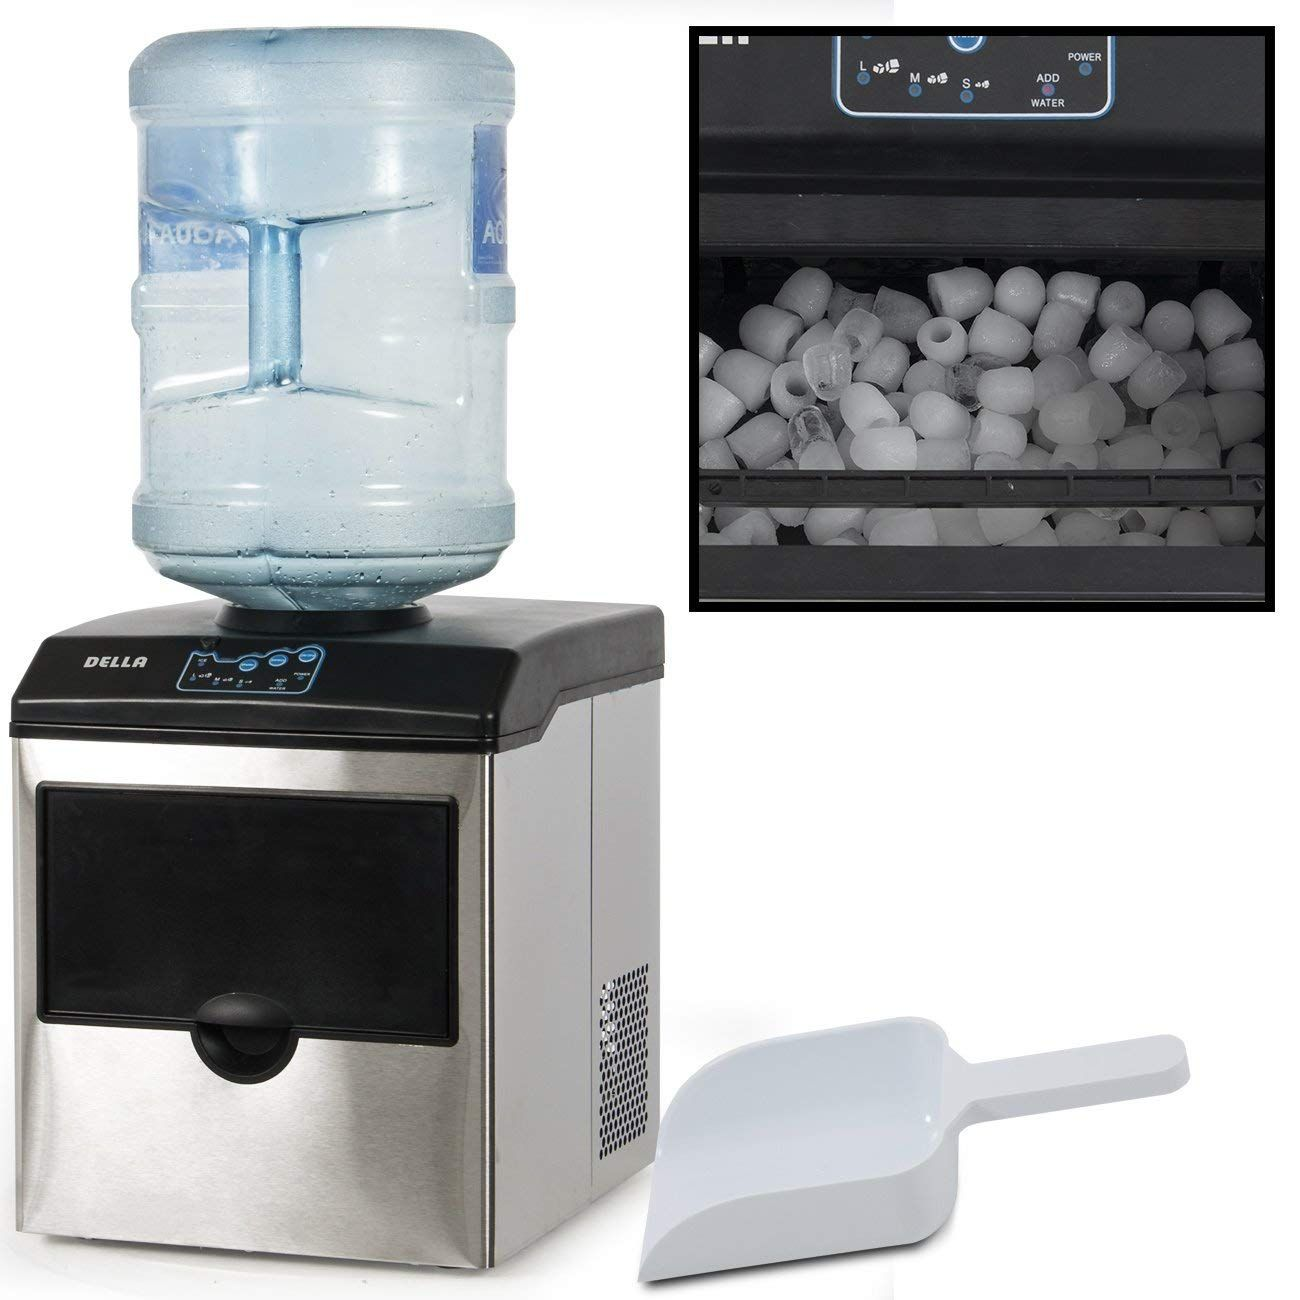 Best Countertop Ice Maker With A Water Dispenser The Best Of Both